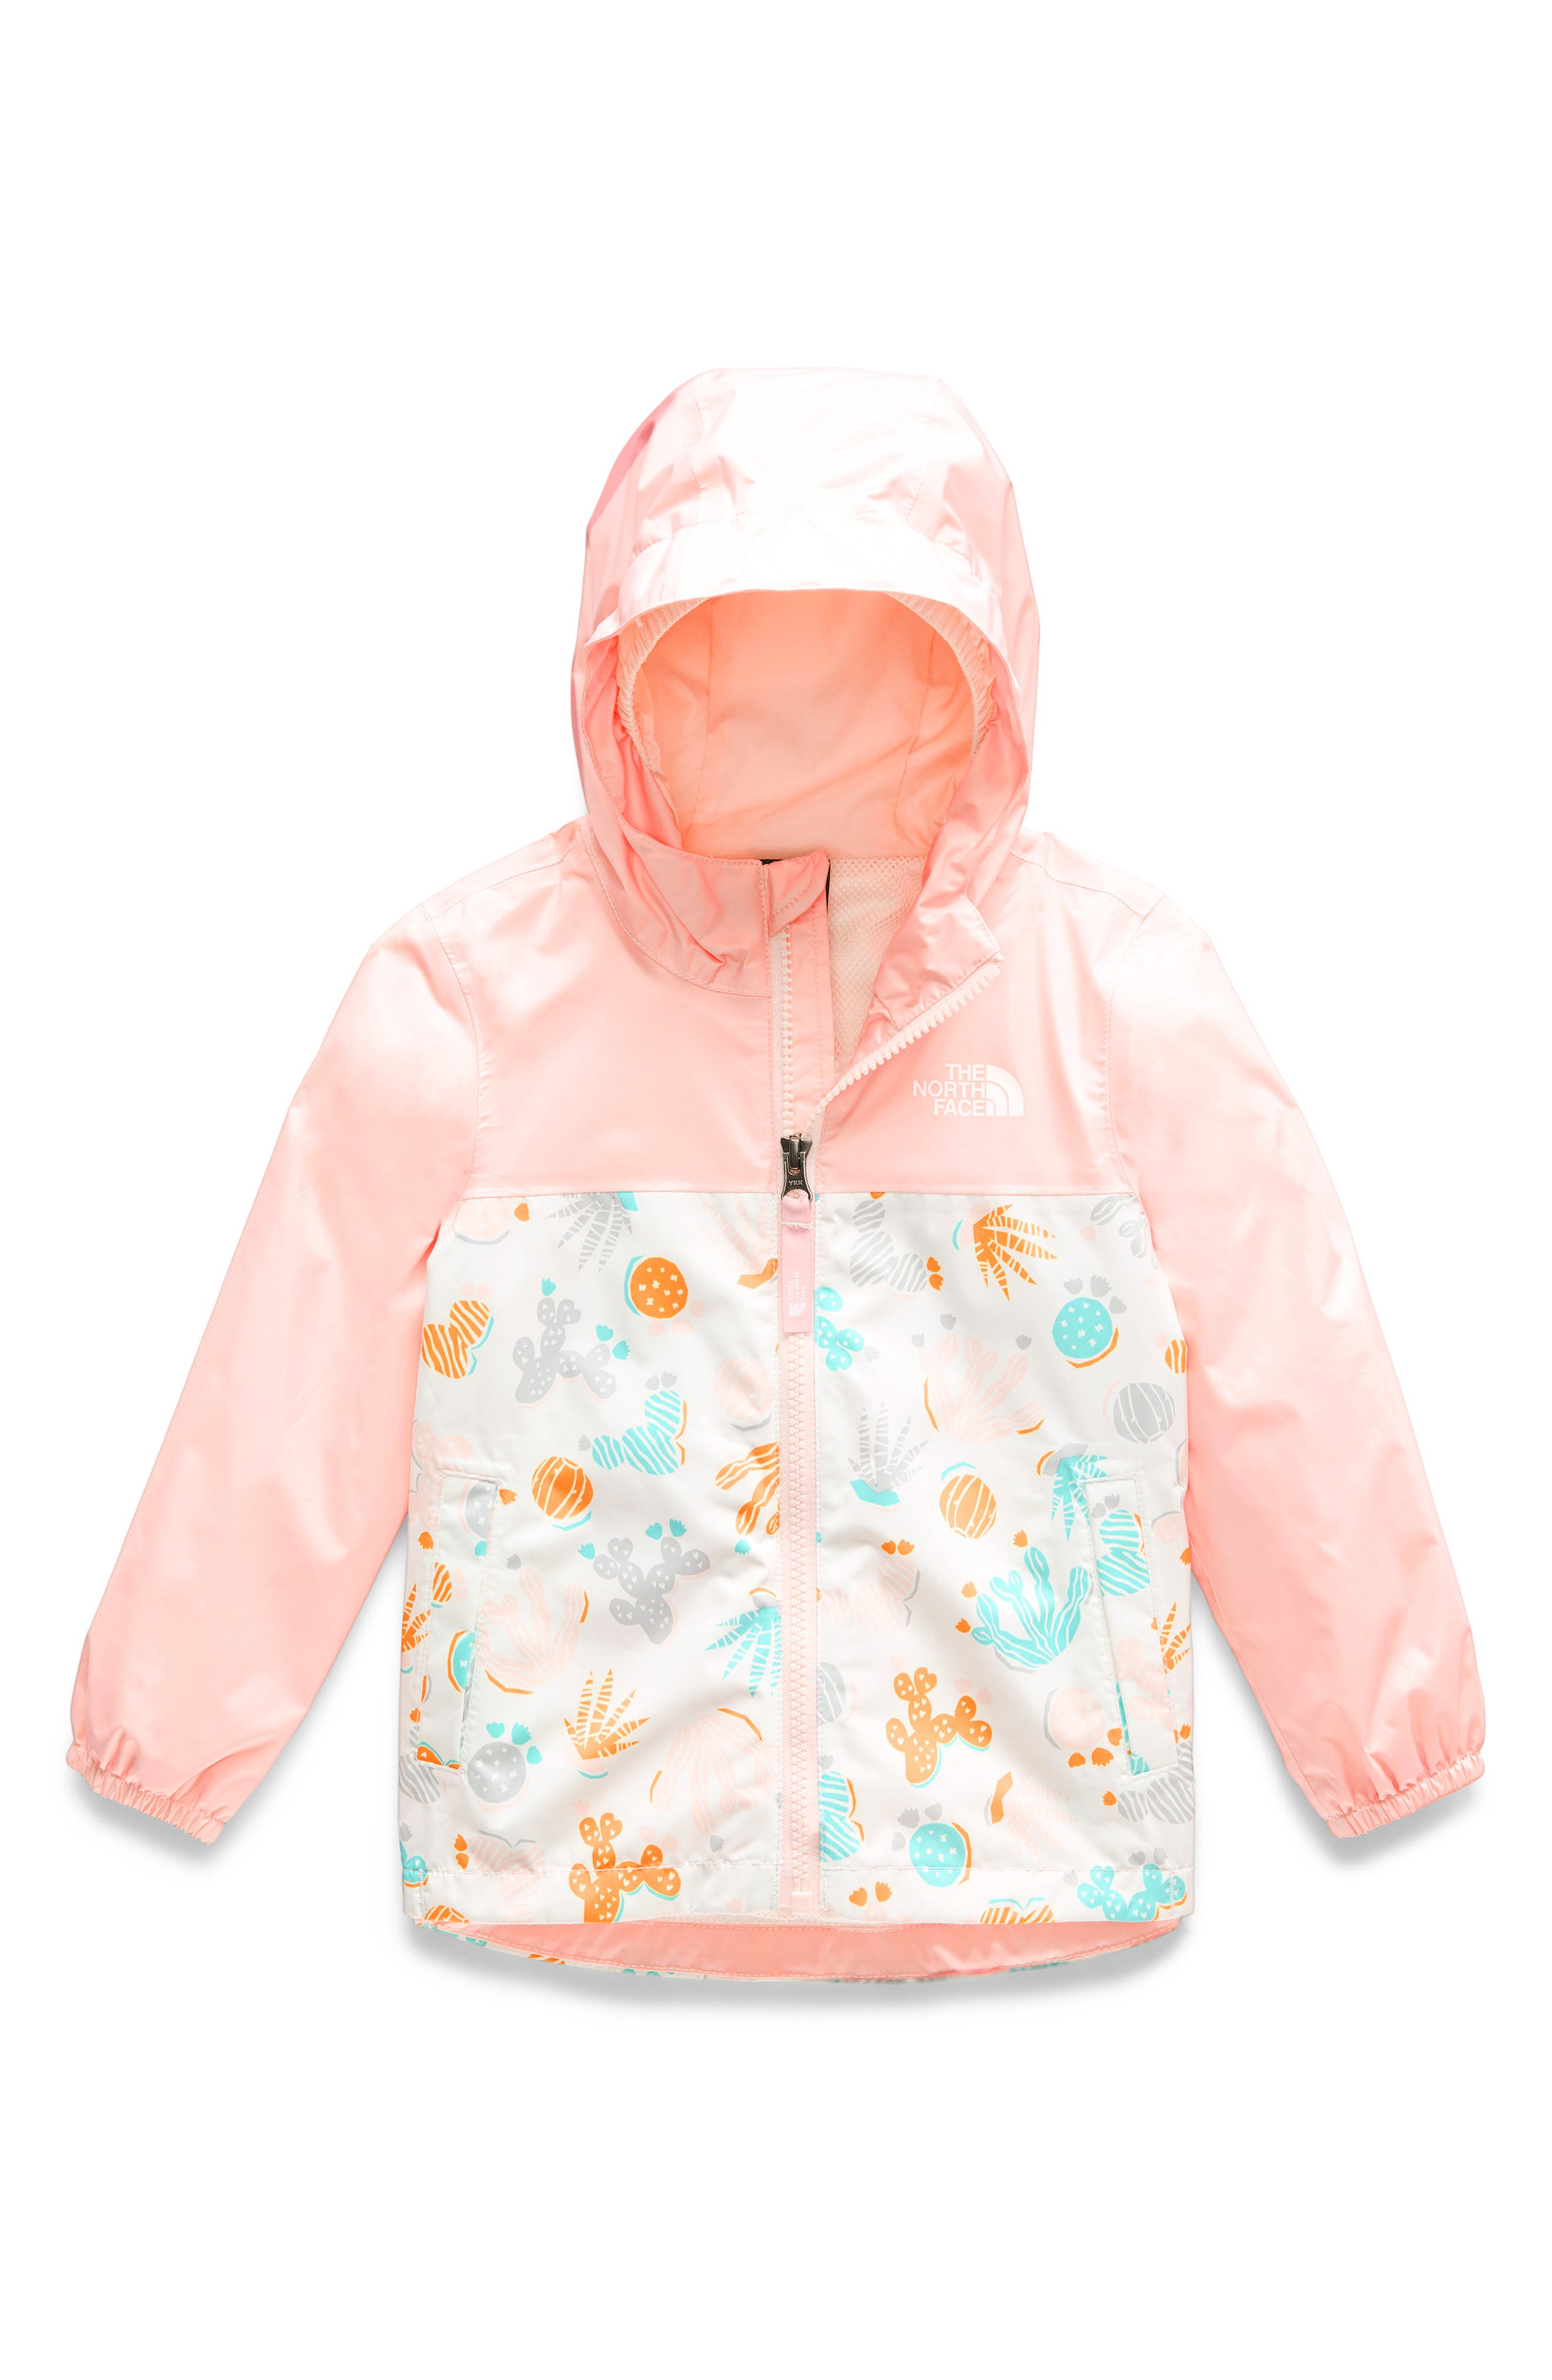 Nice Toddler Jacket 2t Grade Products According To Quality Baby & Toddler Clothing